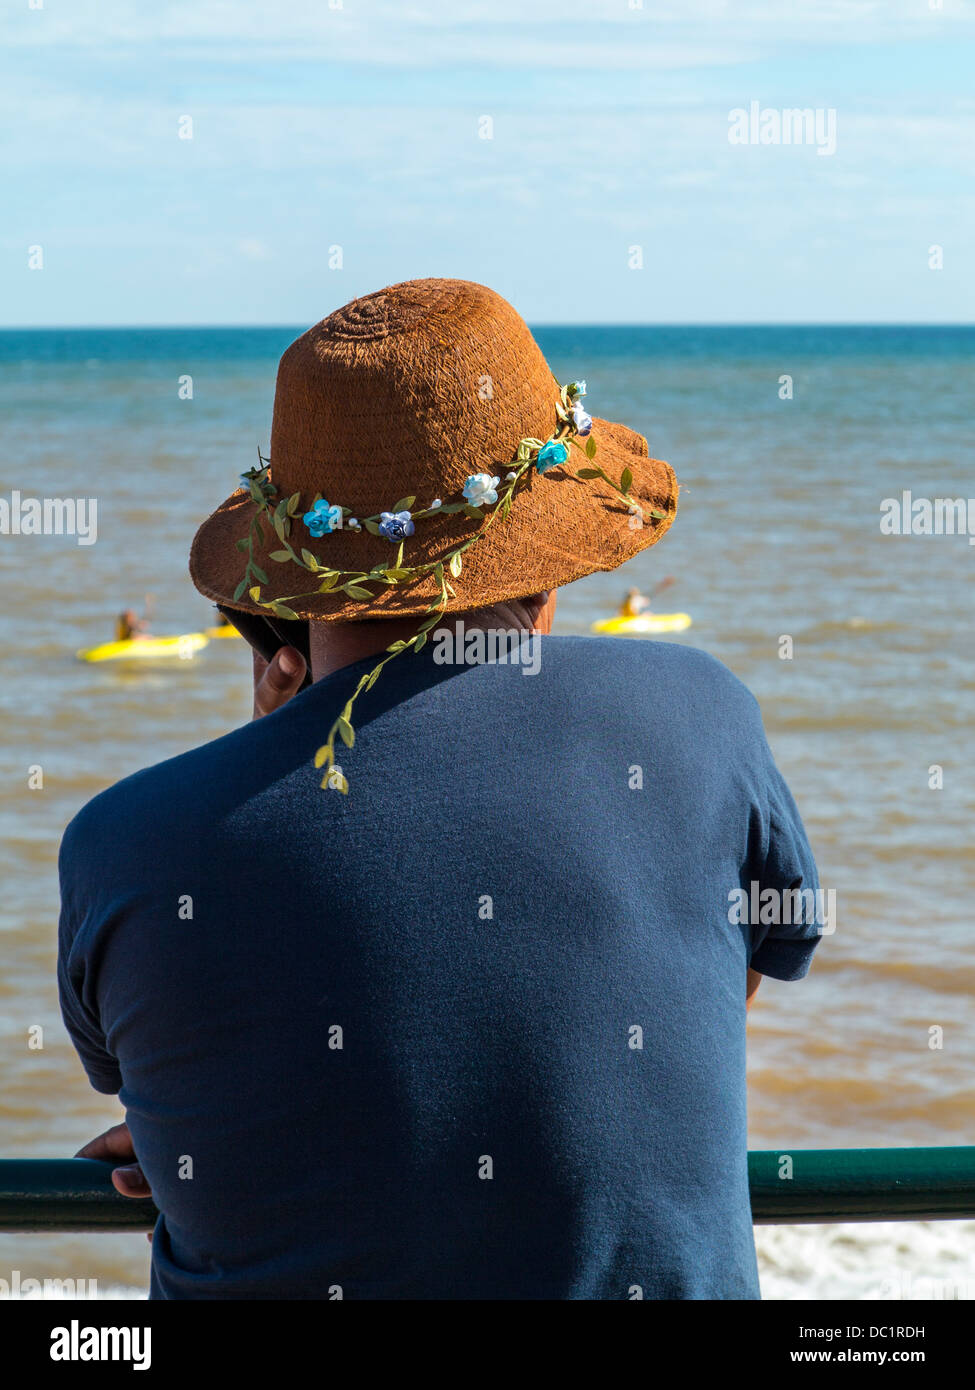 Man on phone with garland around his hat on Sidmouth seafront, Devon, England - Stock Image